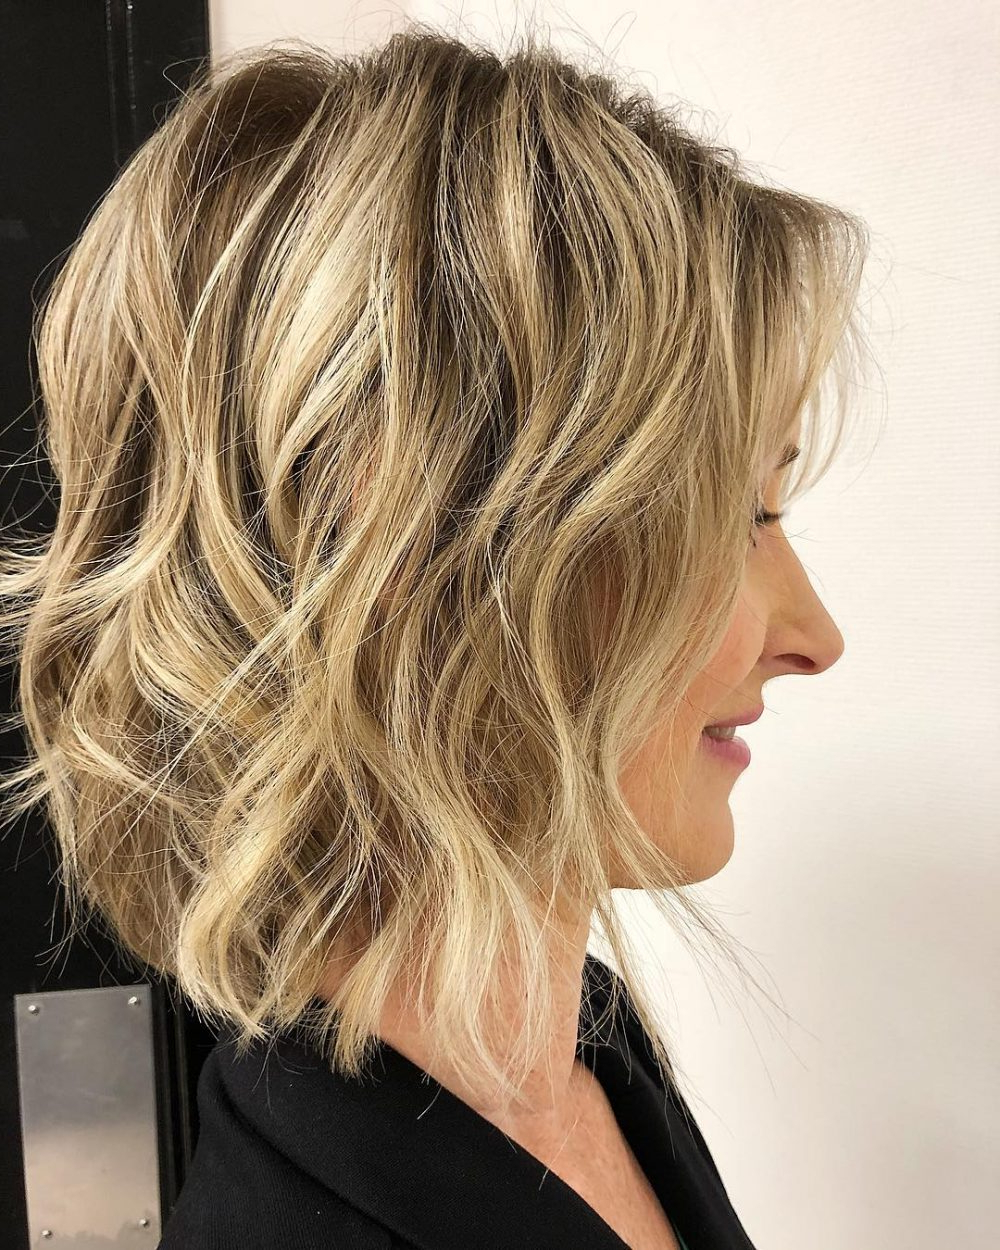 43 Perfect Short Hairstyles For Fine Hair In 2018 Intended For Angelic Blonde Balayage Bob Hairstyles With Curls (View 14 of 20)